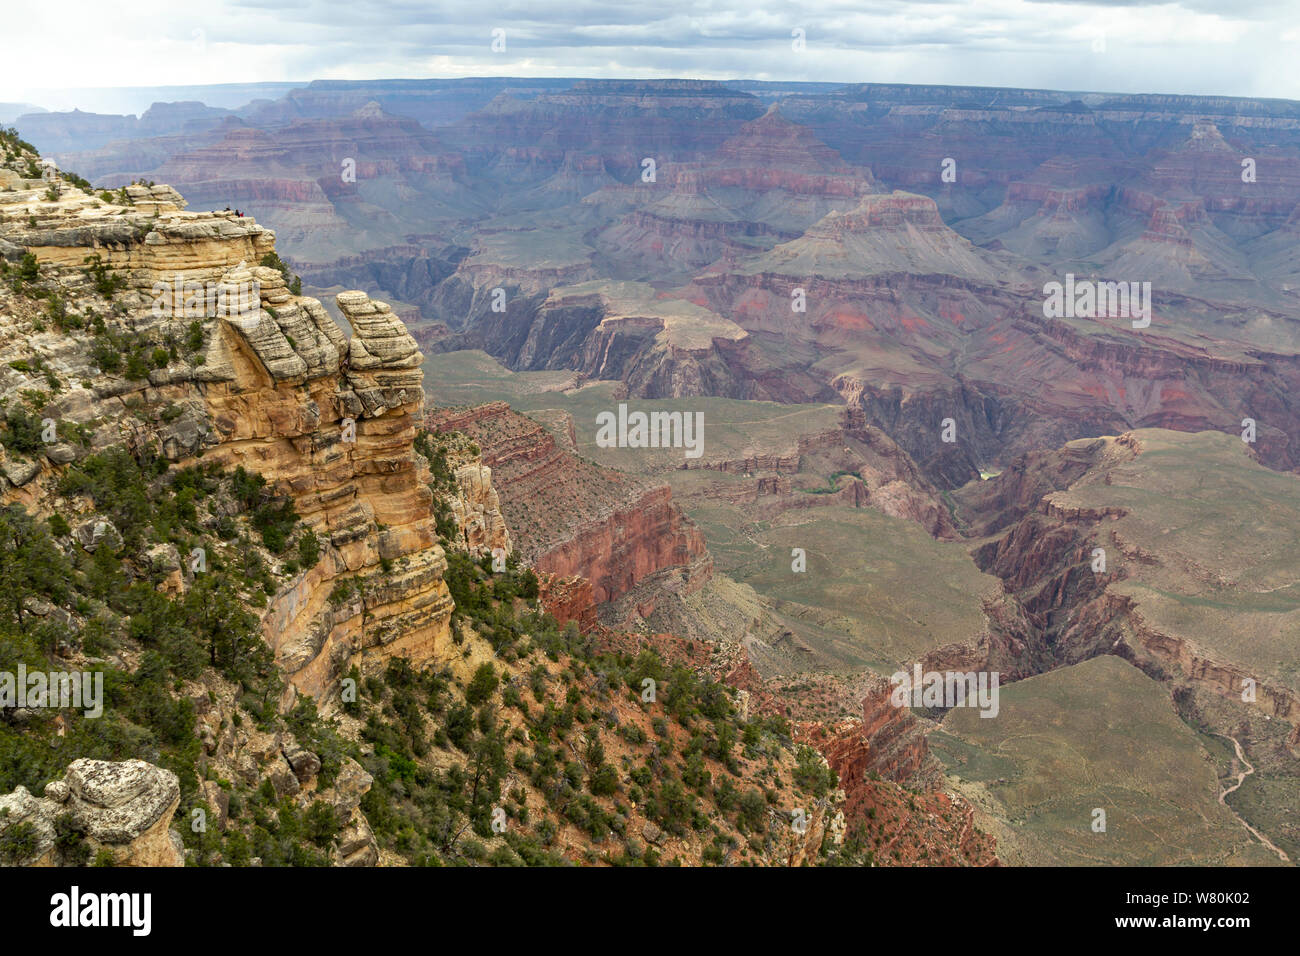 View from south rim in the Grand Canyon National Park, United States Stock Photo